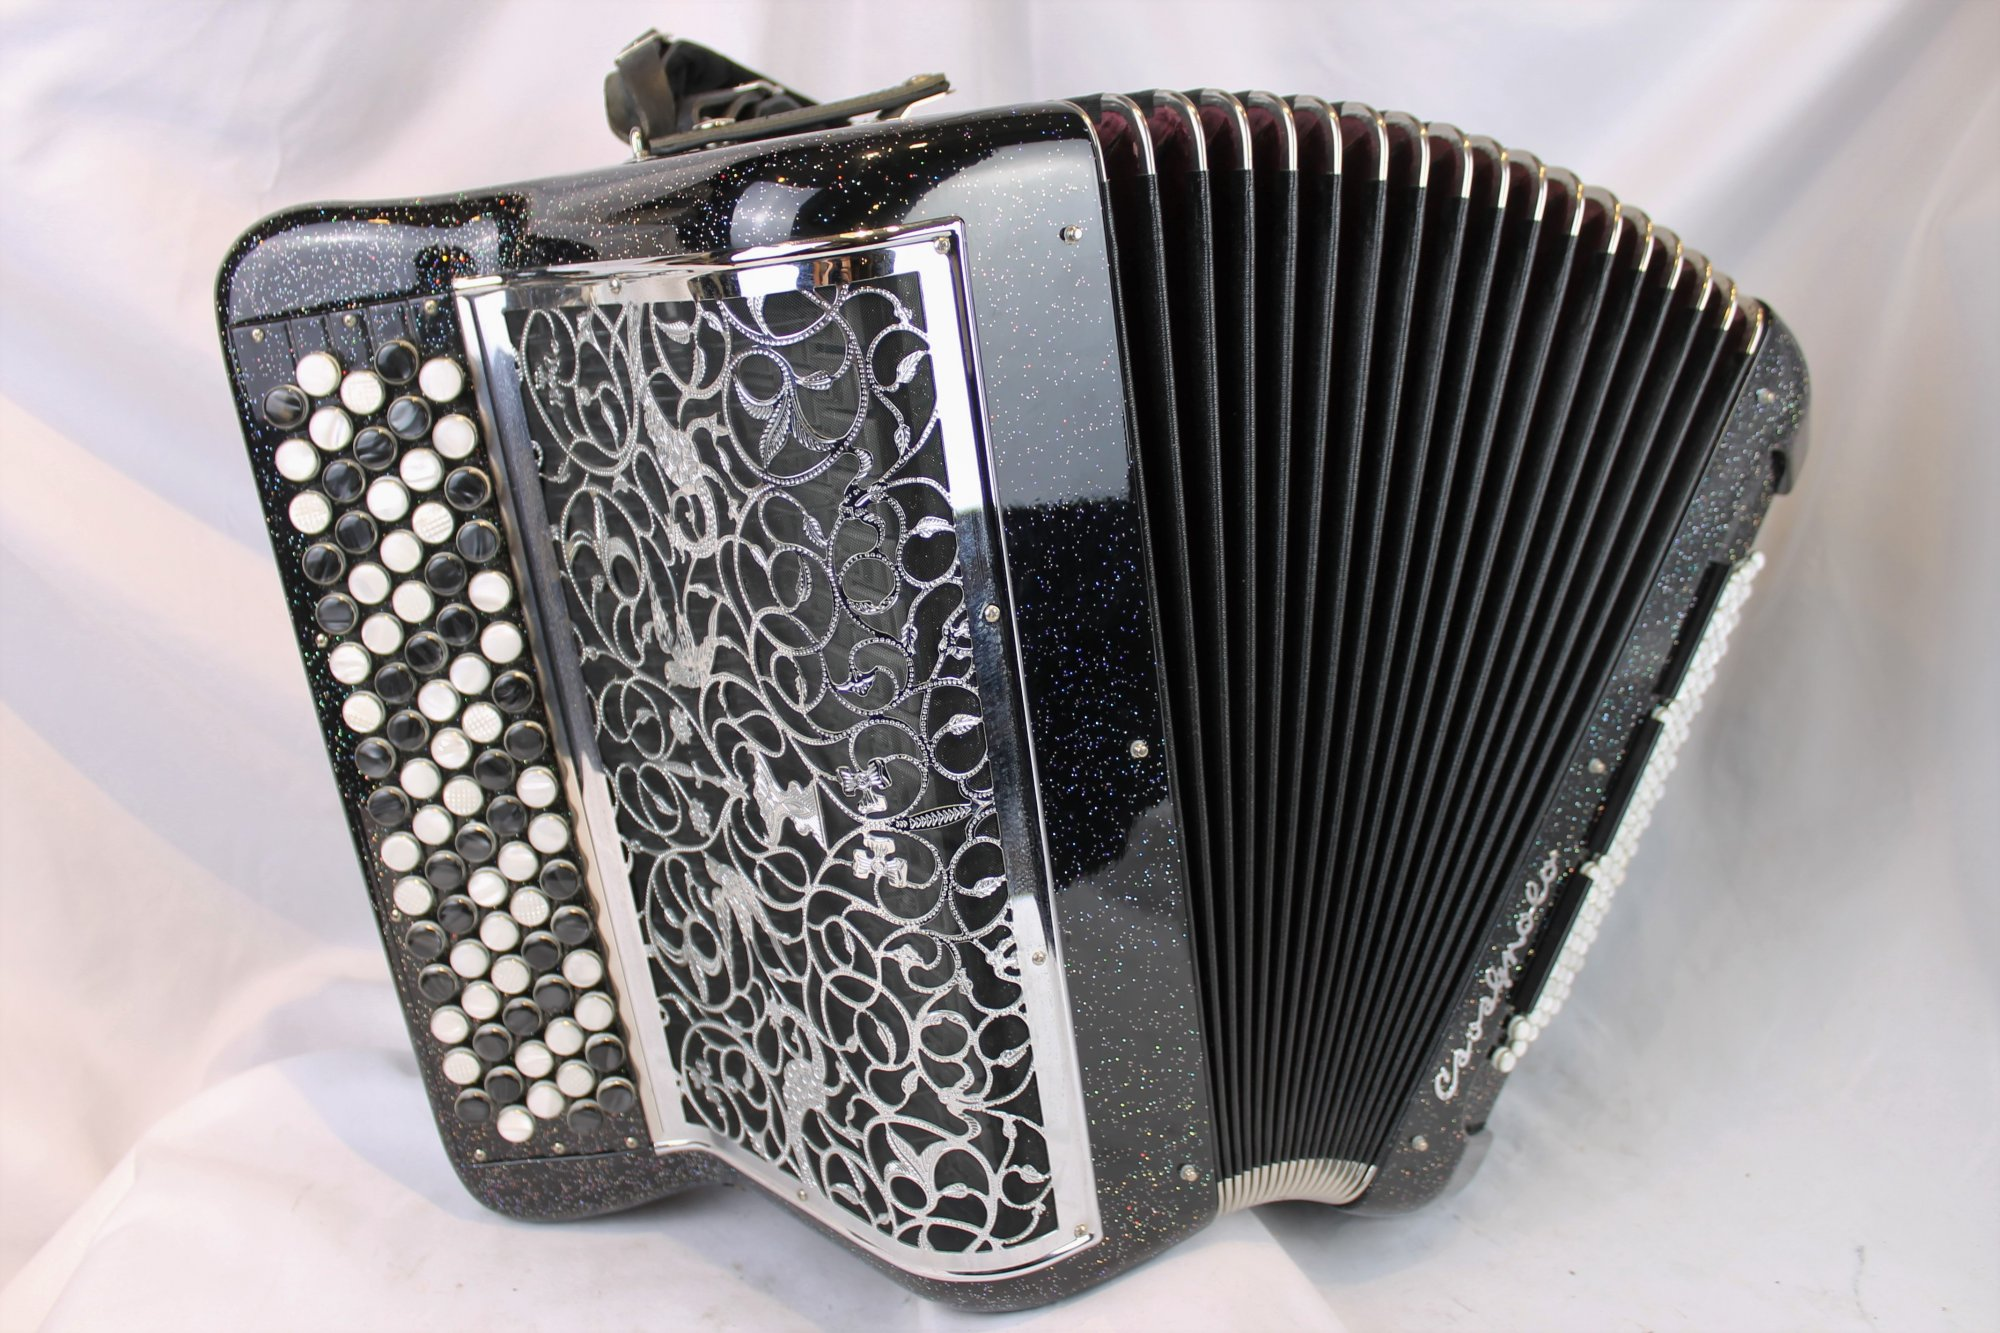 3997 - Black Starlight Cavagnolo Professional 8 Compact Chromatic Button Accordion LMMM 82 96